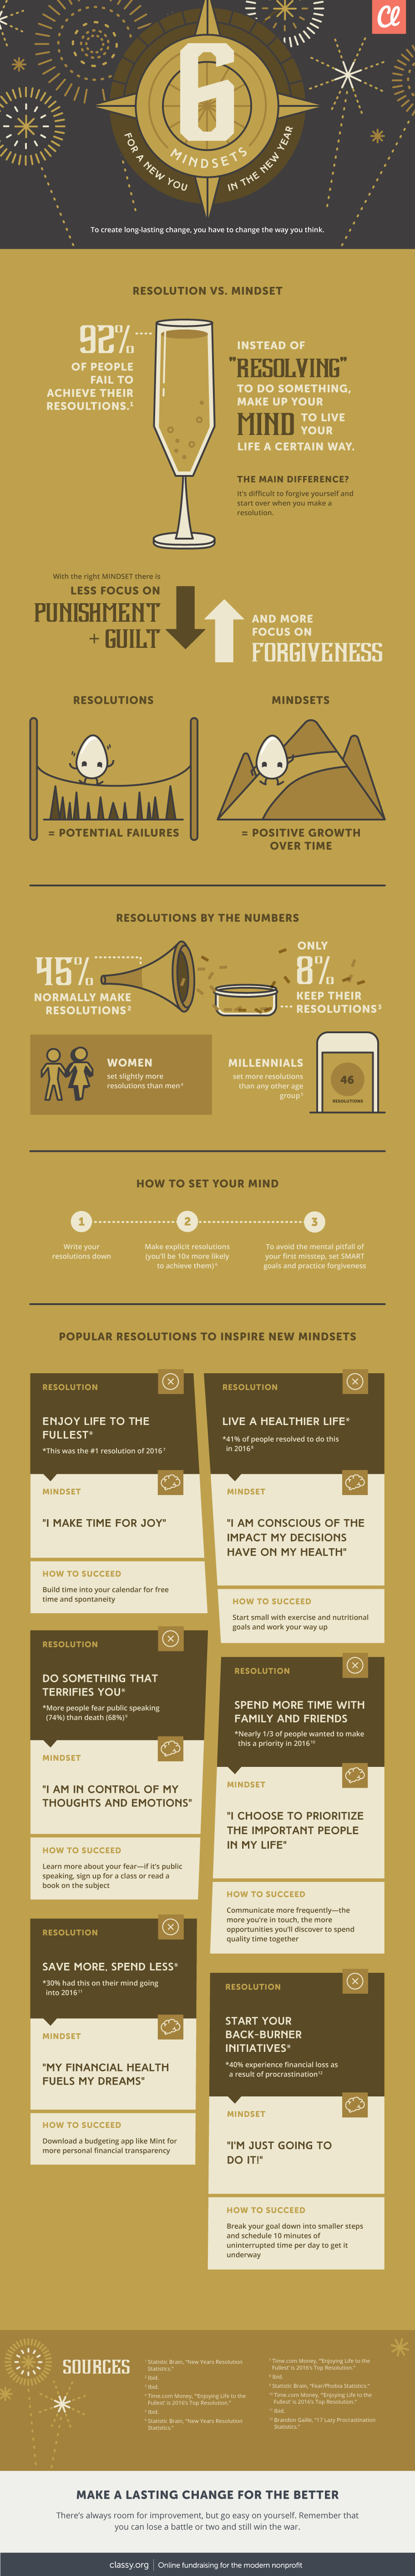 Infographic on new year